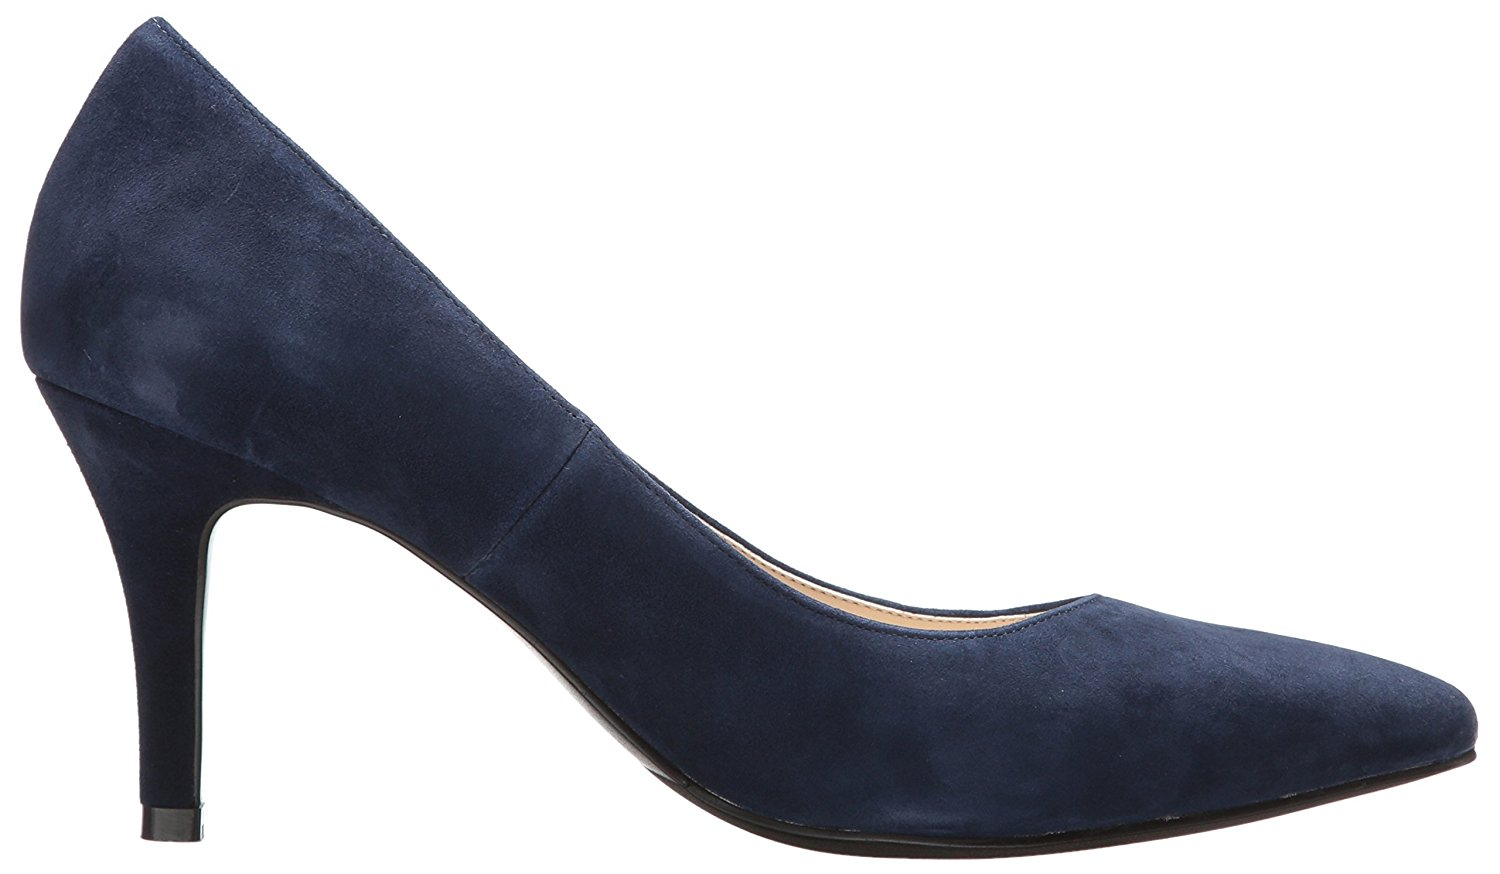 Cole Haan Womens Amelia Suede Pointed Toe Classic, Blue/navy suede, Size 8.5